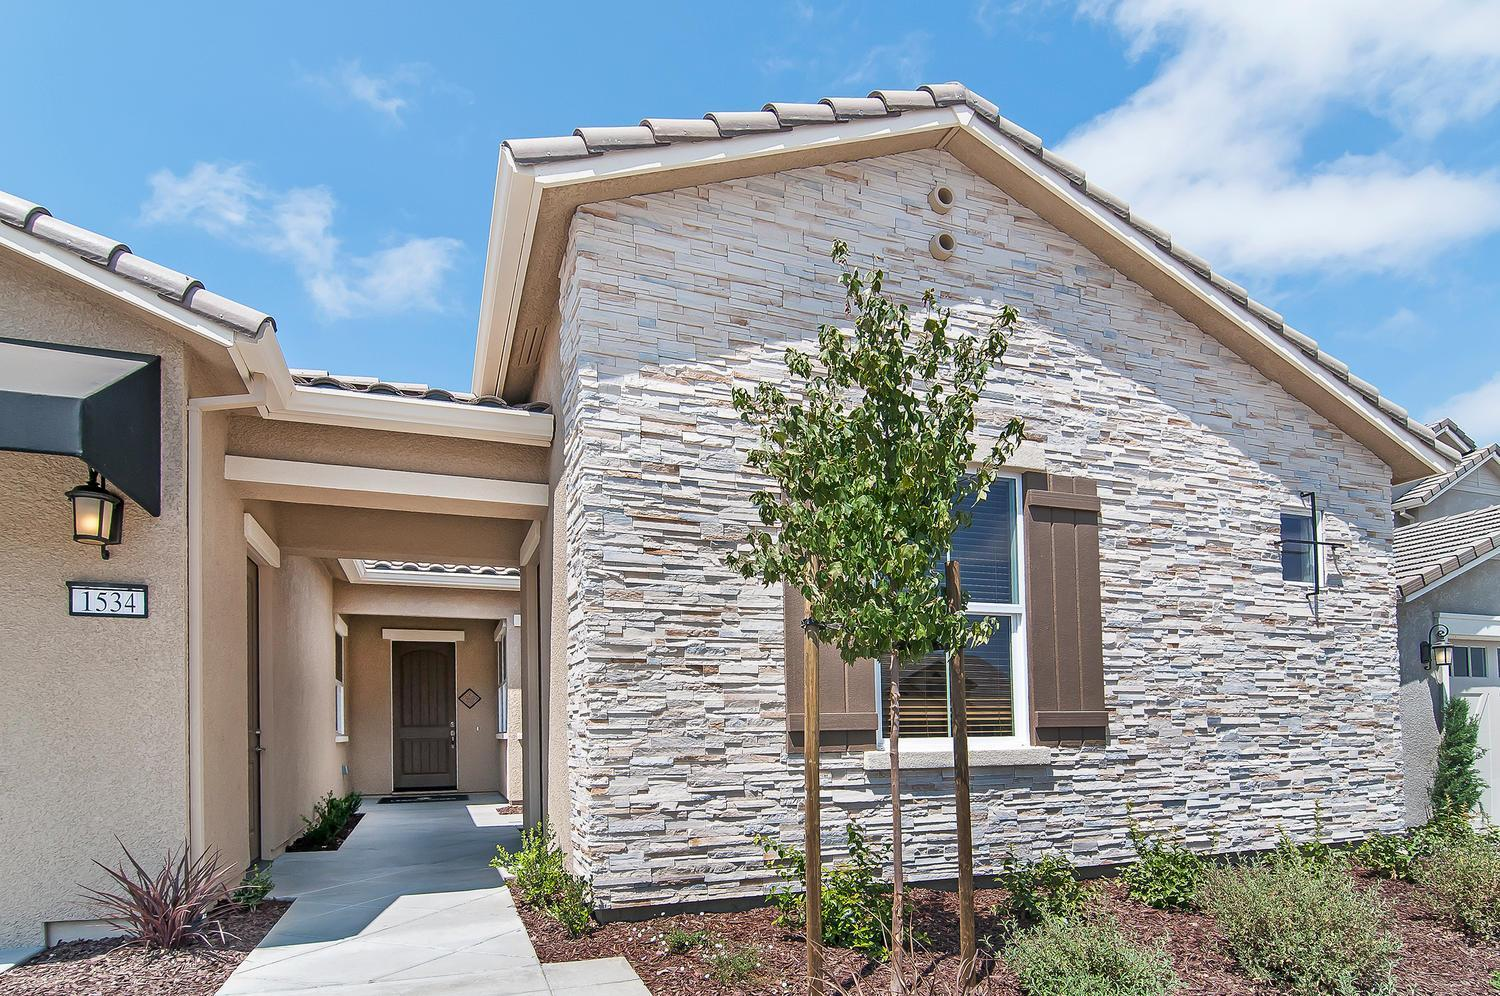 Single Family for Active at Serenity - Residence 6 1534 Santana Ranch Drive Hollister, California 95023 United States